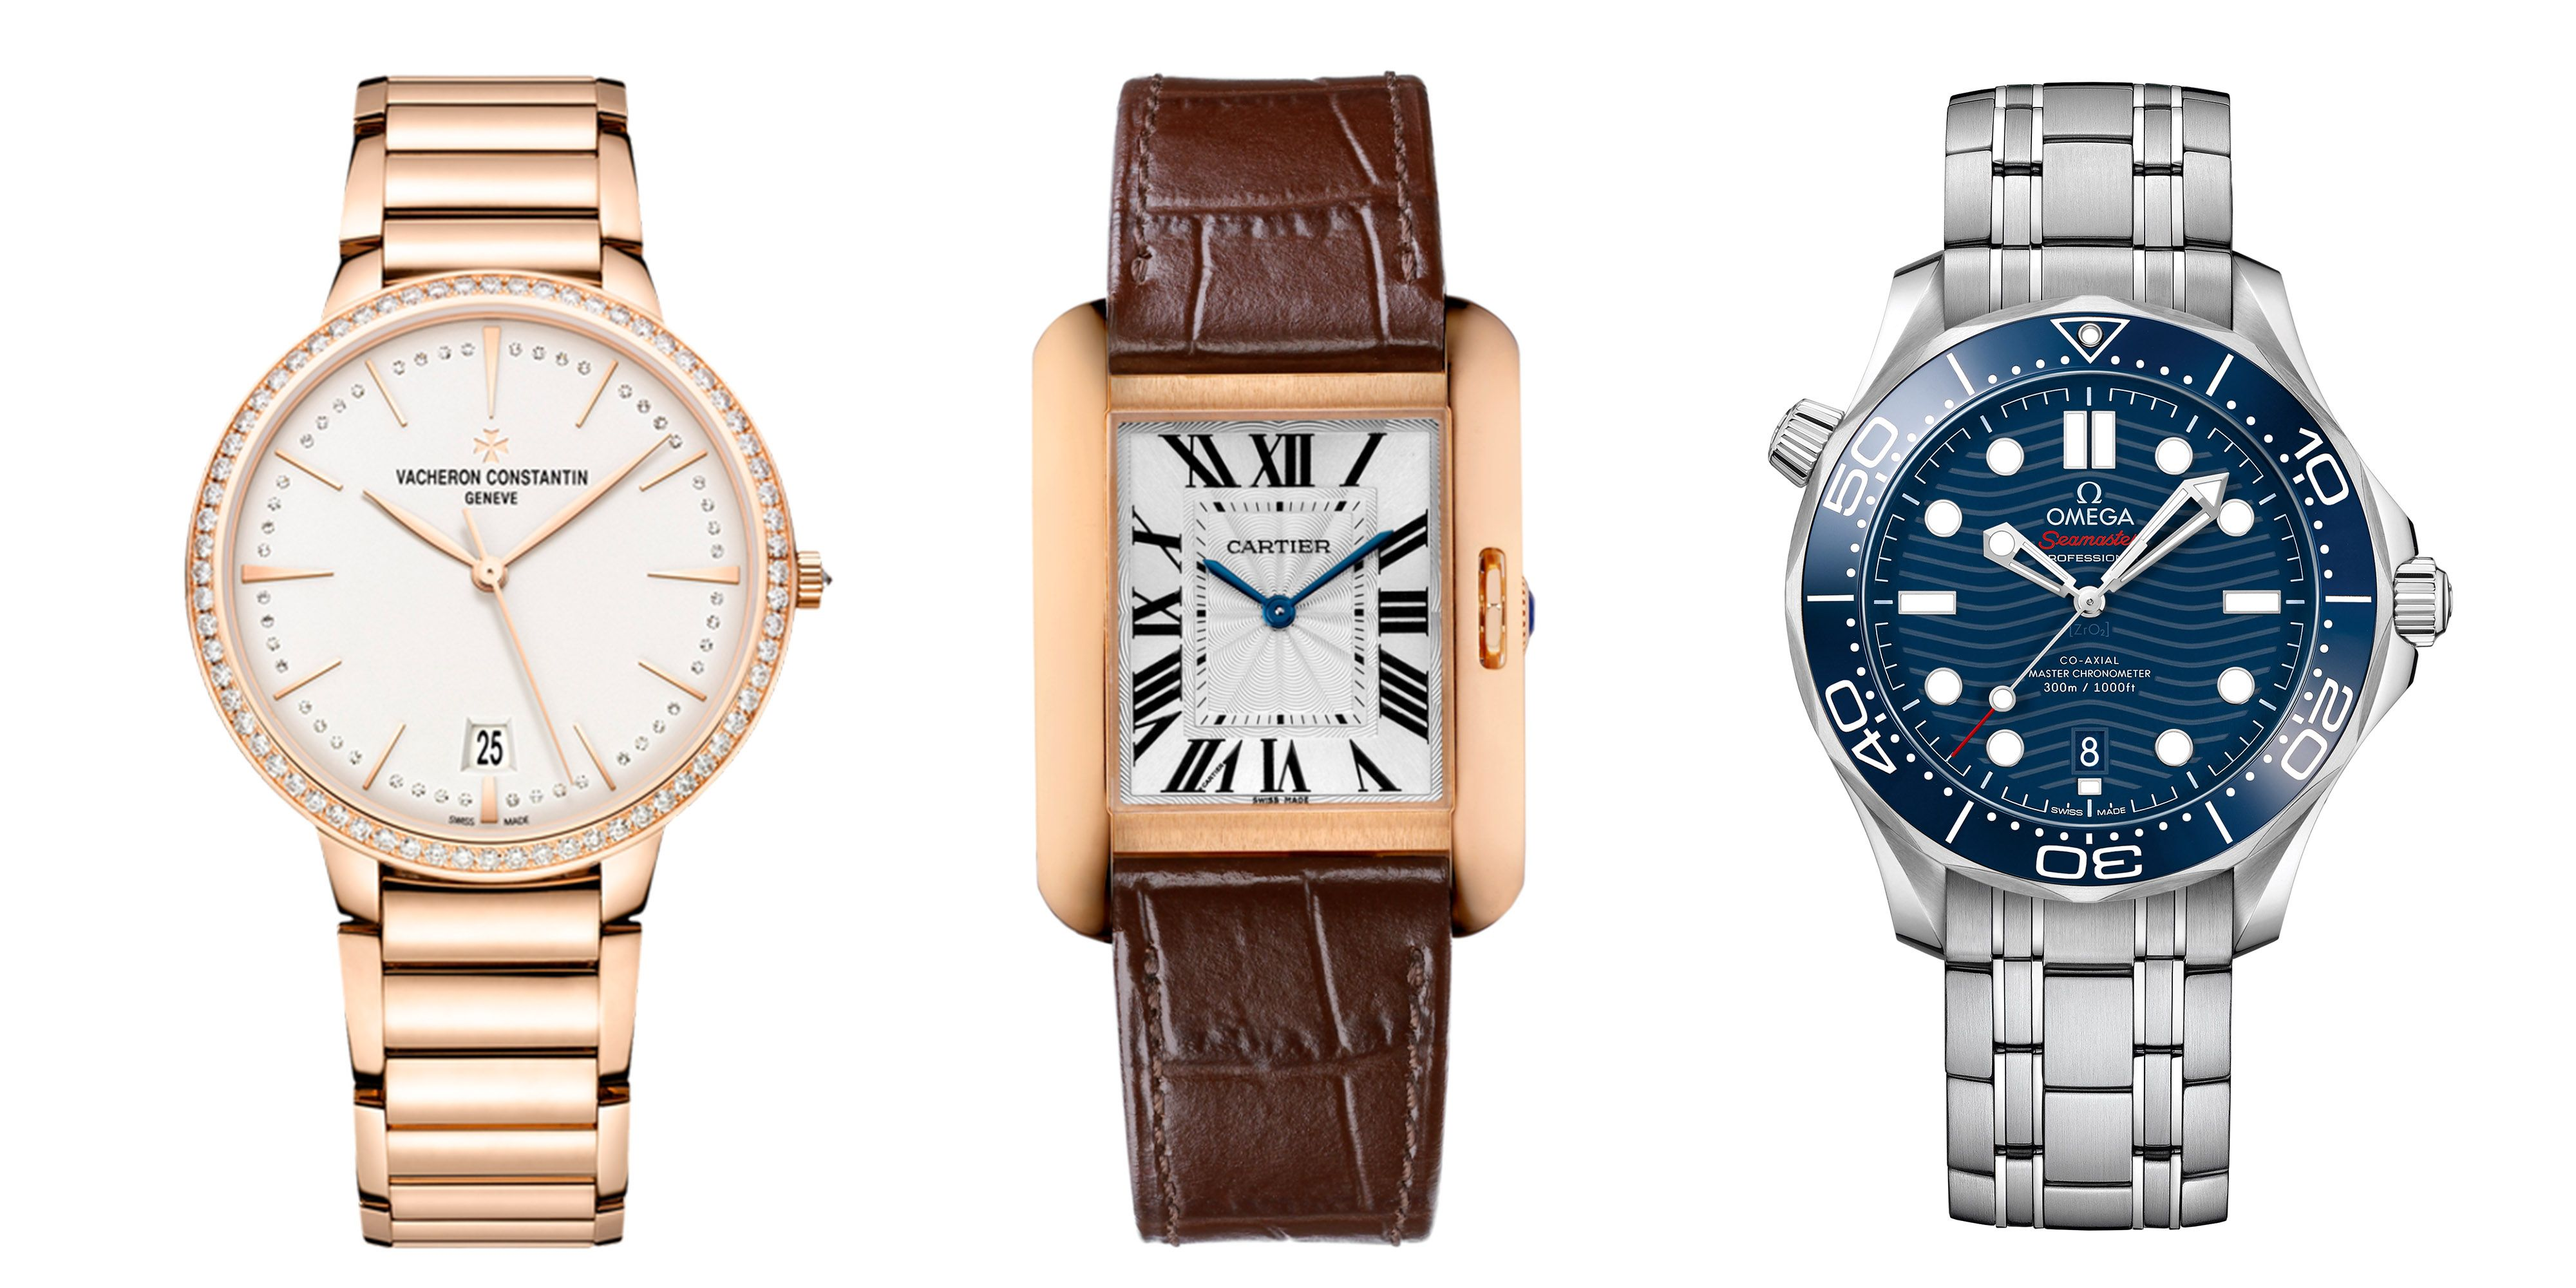 20 Best Watch Brands For 2018 Top Luxury Watch Brands To Know